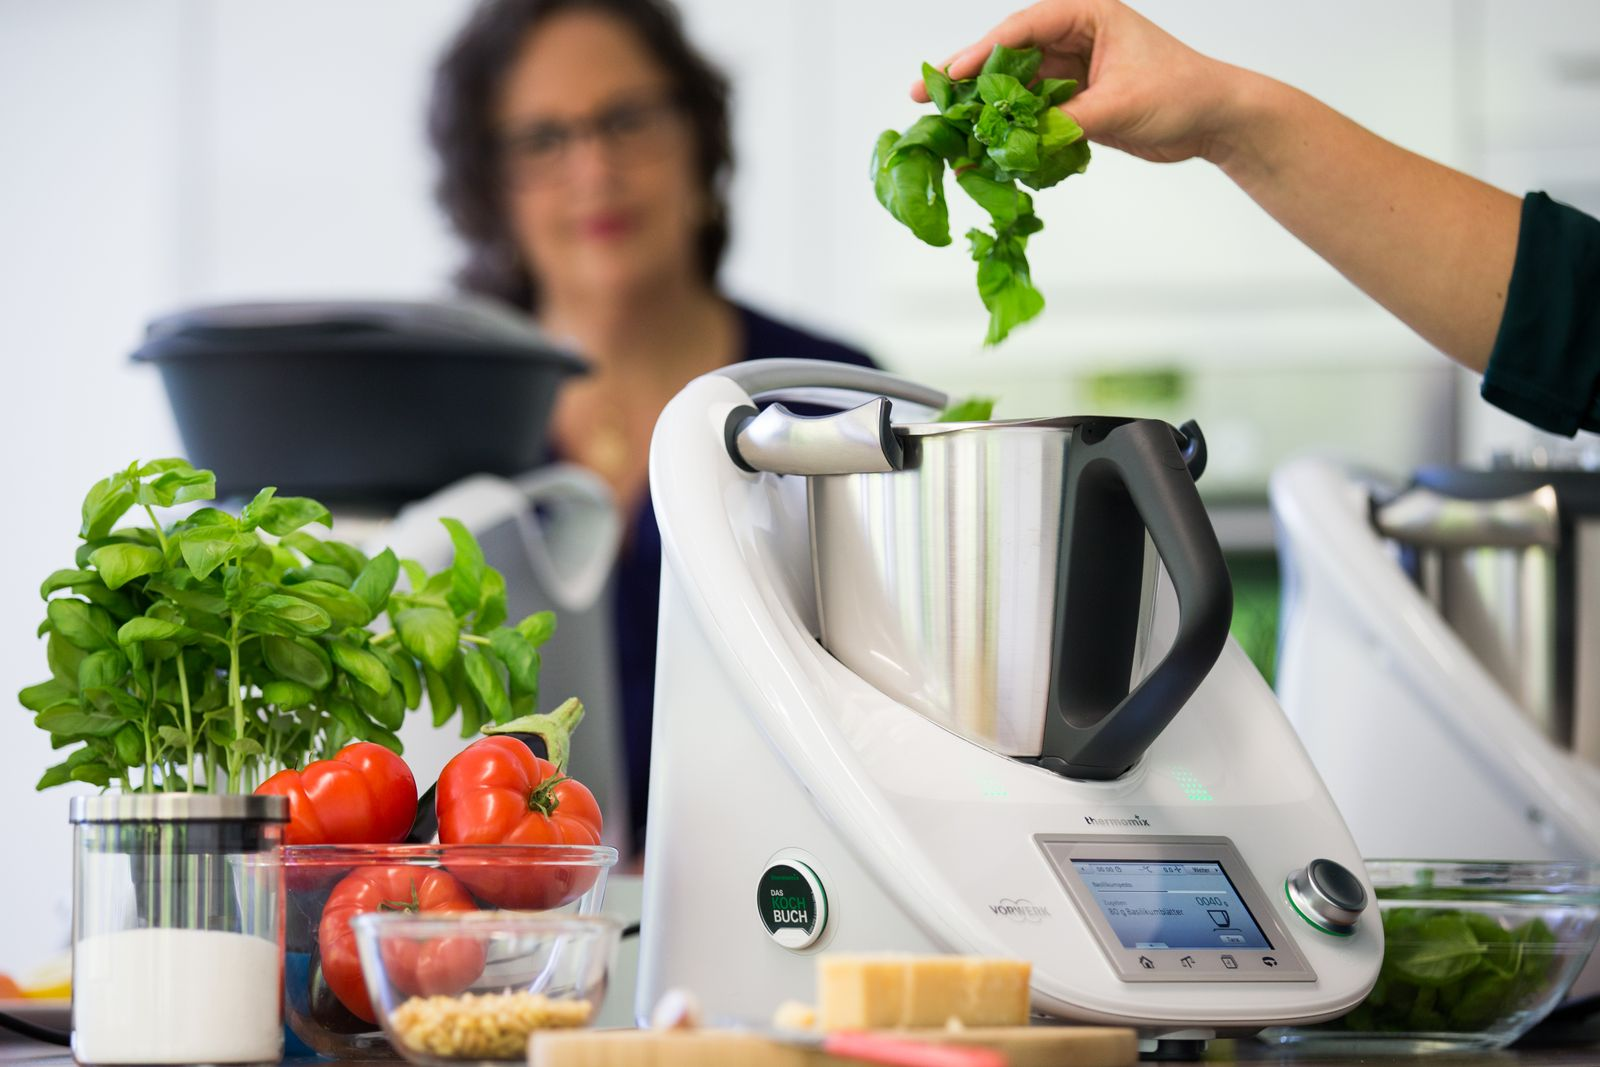 Vorwerk - Produktion Thermomix